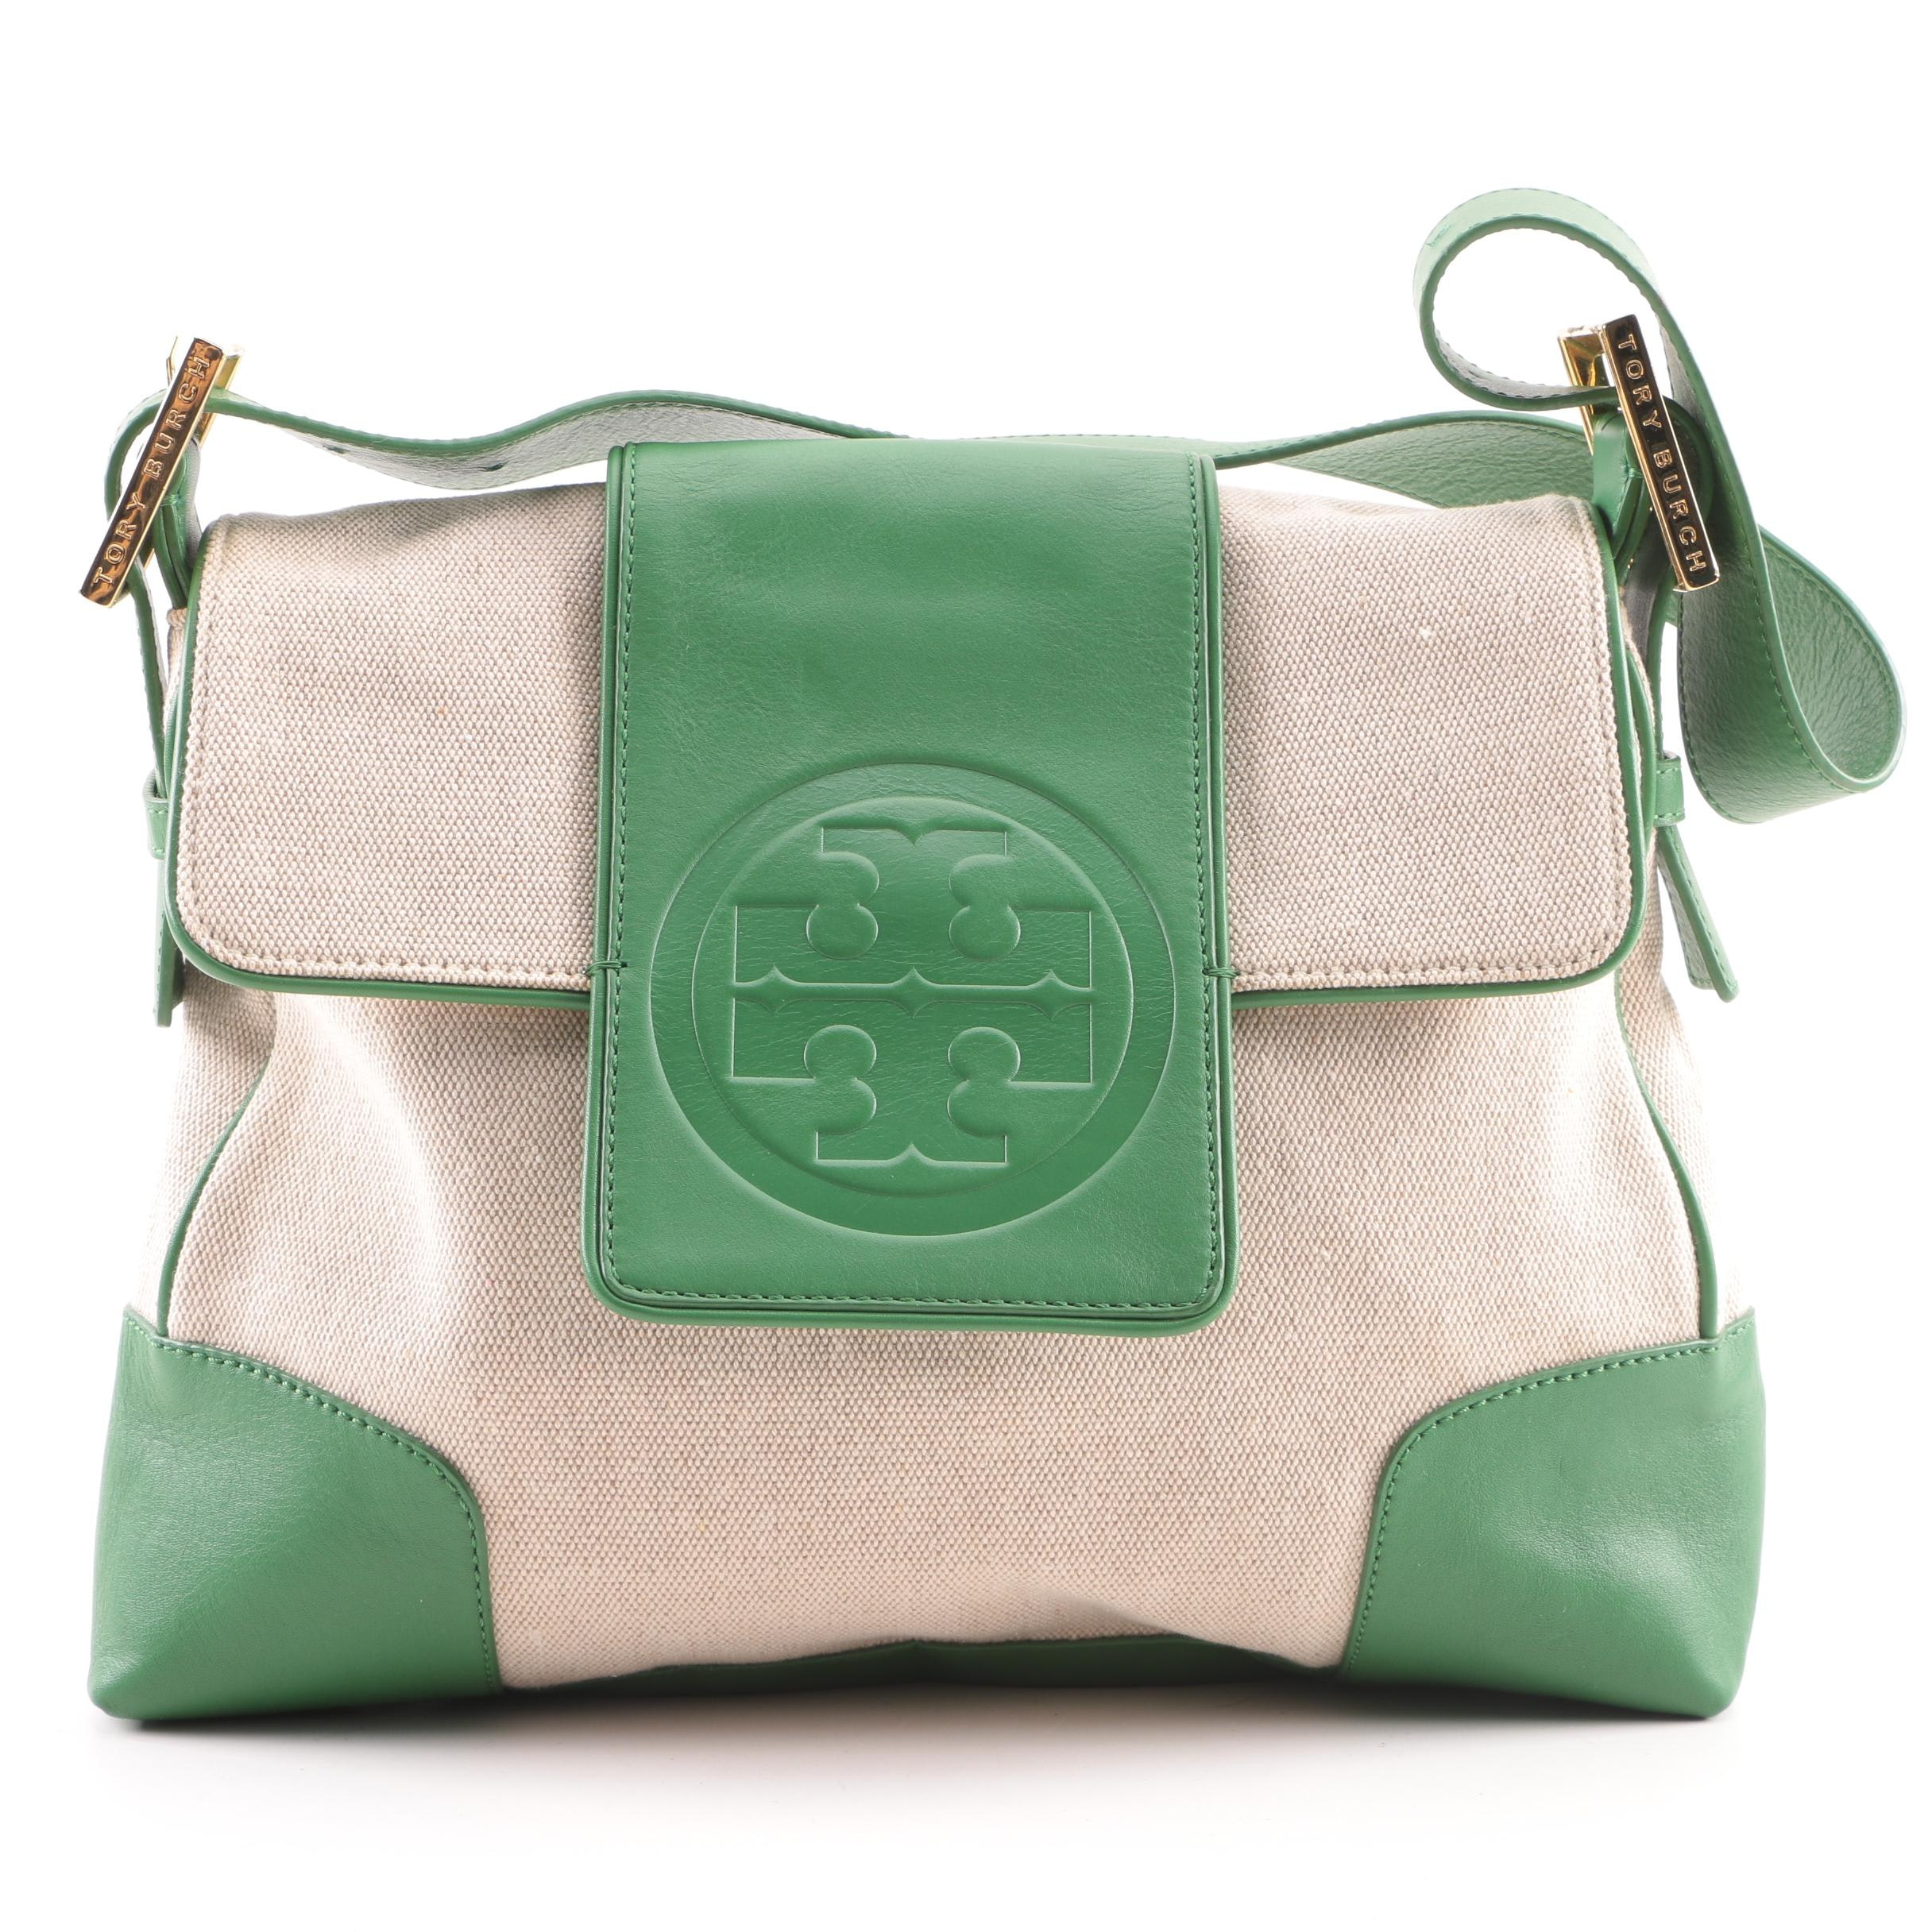 Tory Burch Canvas and Leather Shoulder Bag